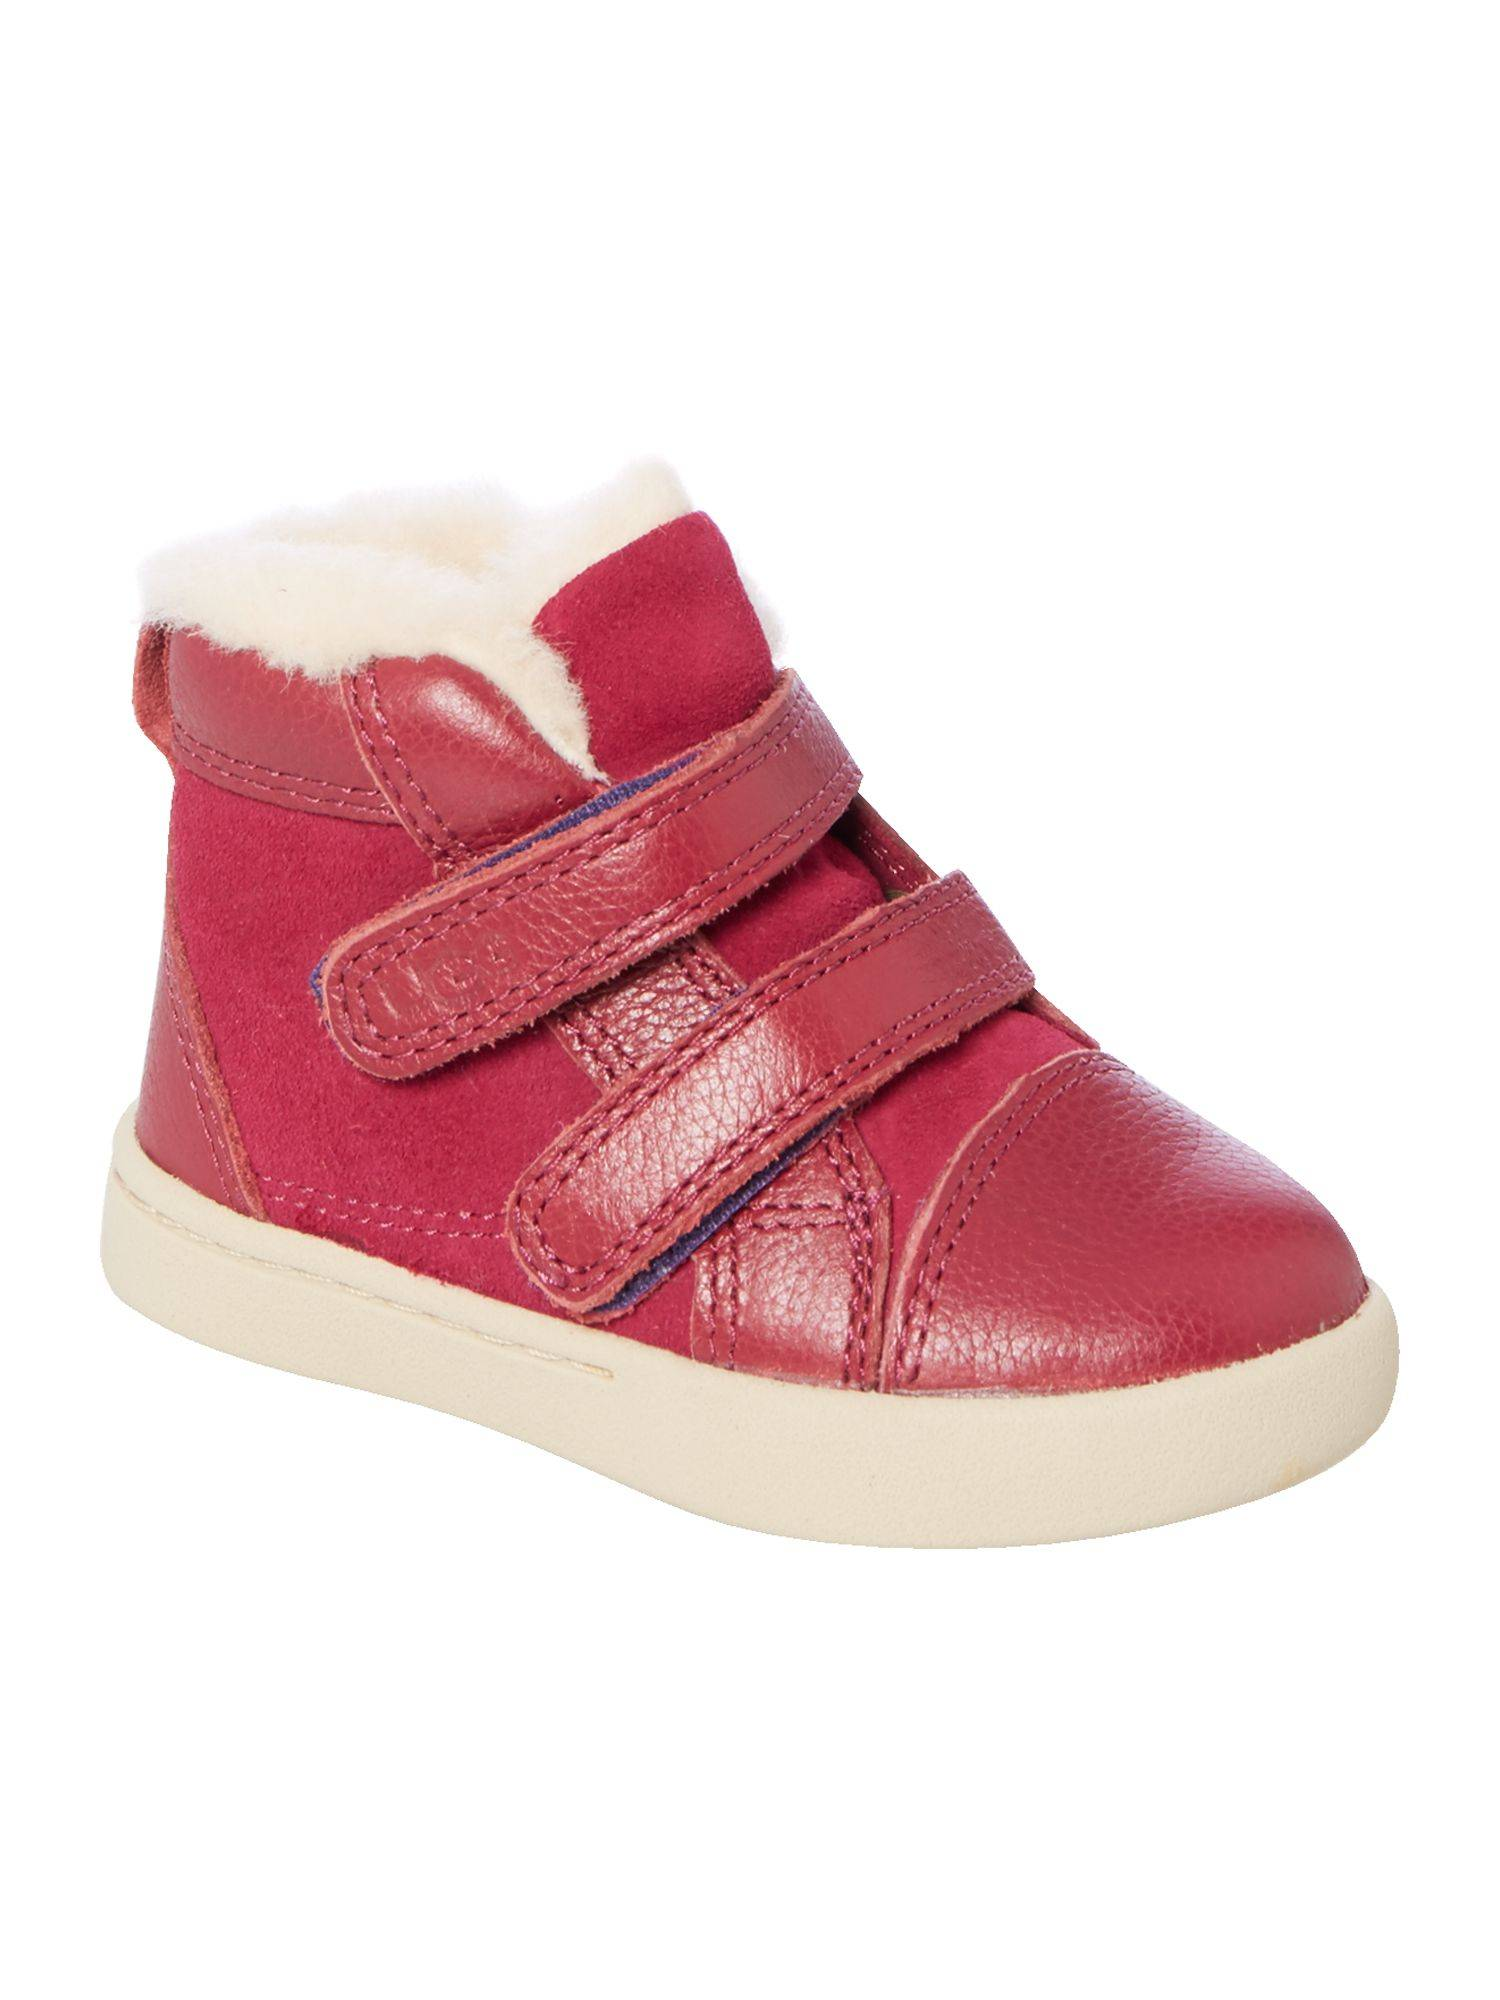 UGG Girls Double Strap Trainers (5 jnr)